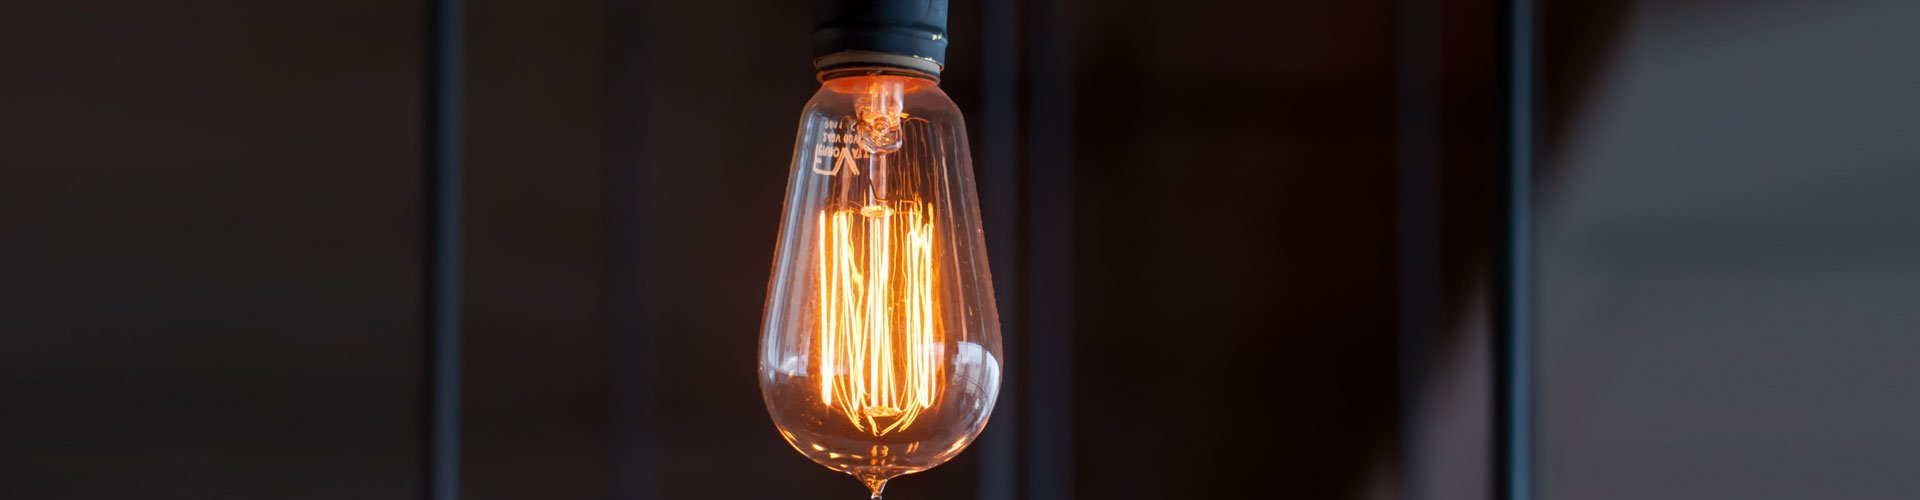 Northern Electrical Supplies | Electrical suppliers in Belfast